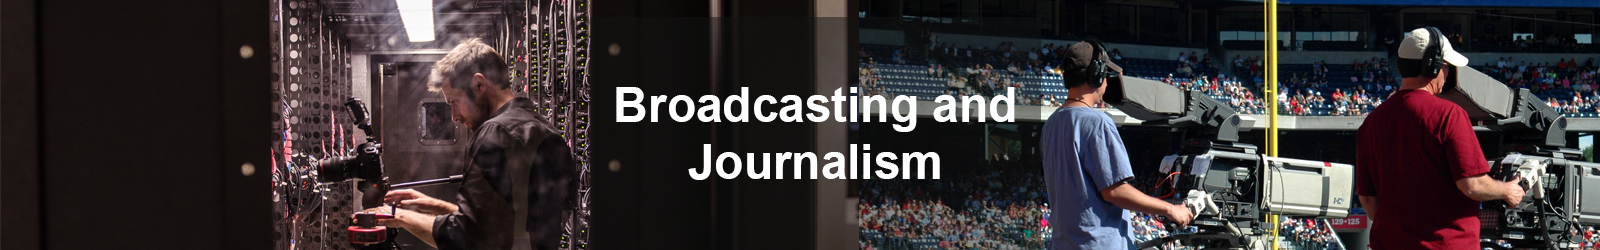 Broadcasting and Journalism